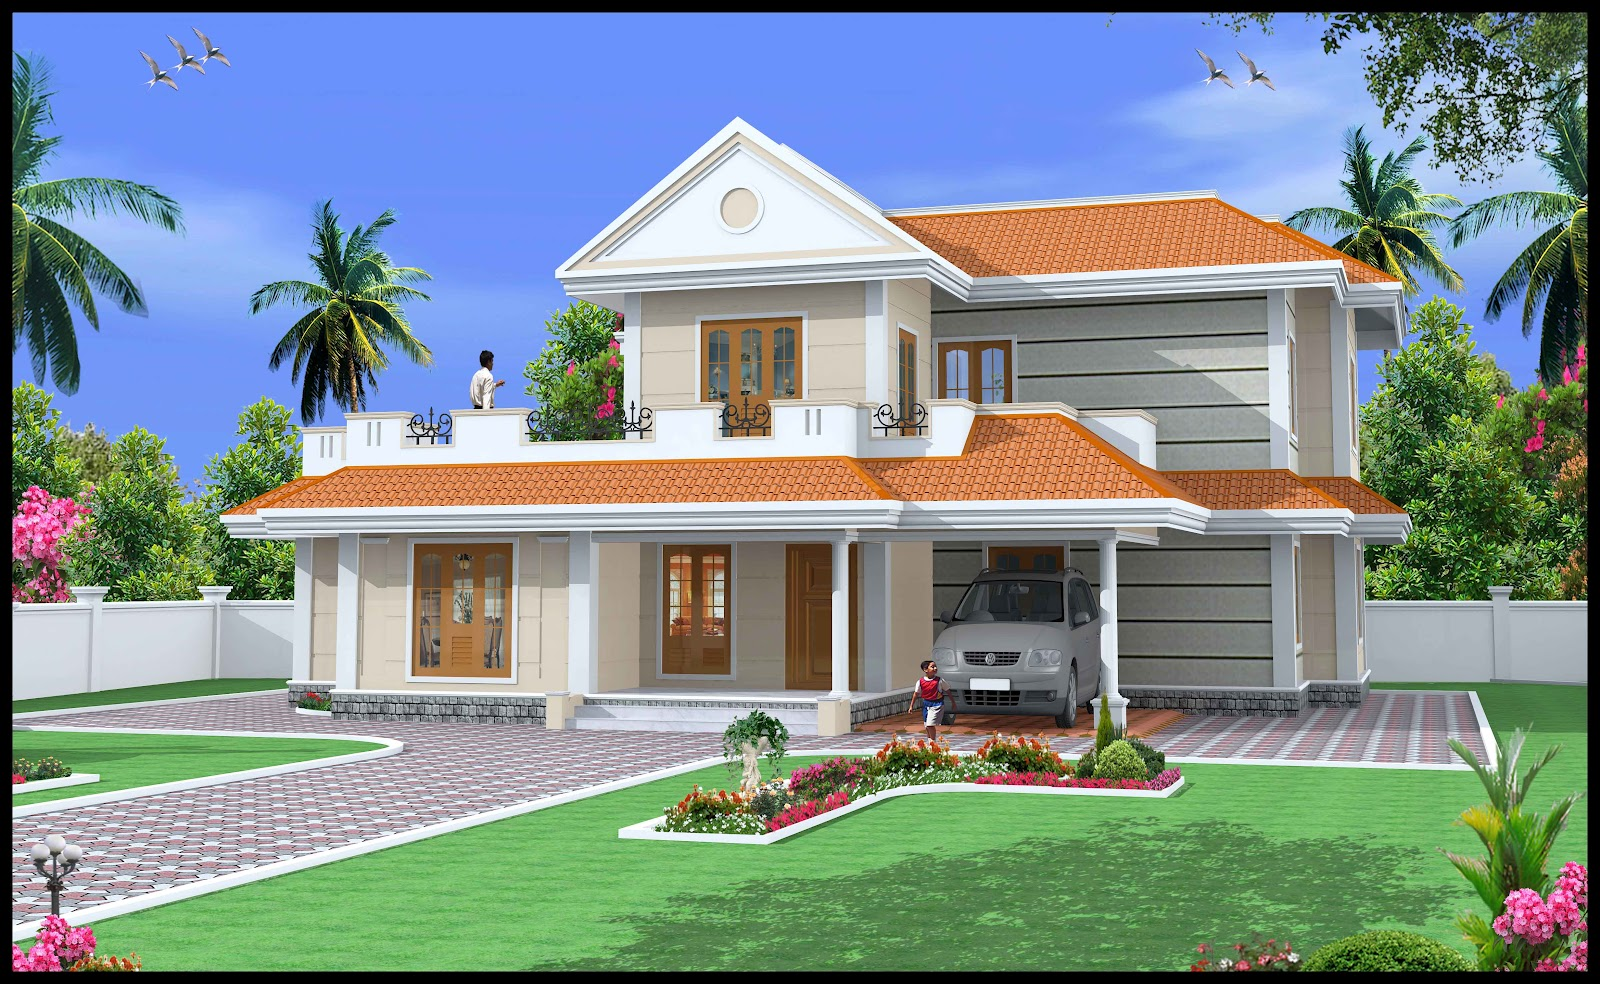 Simple duplex house design indian duplex house designs for Small duplex house plans in india